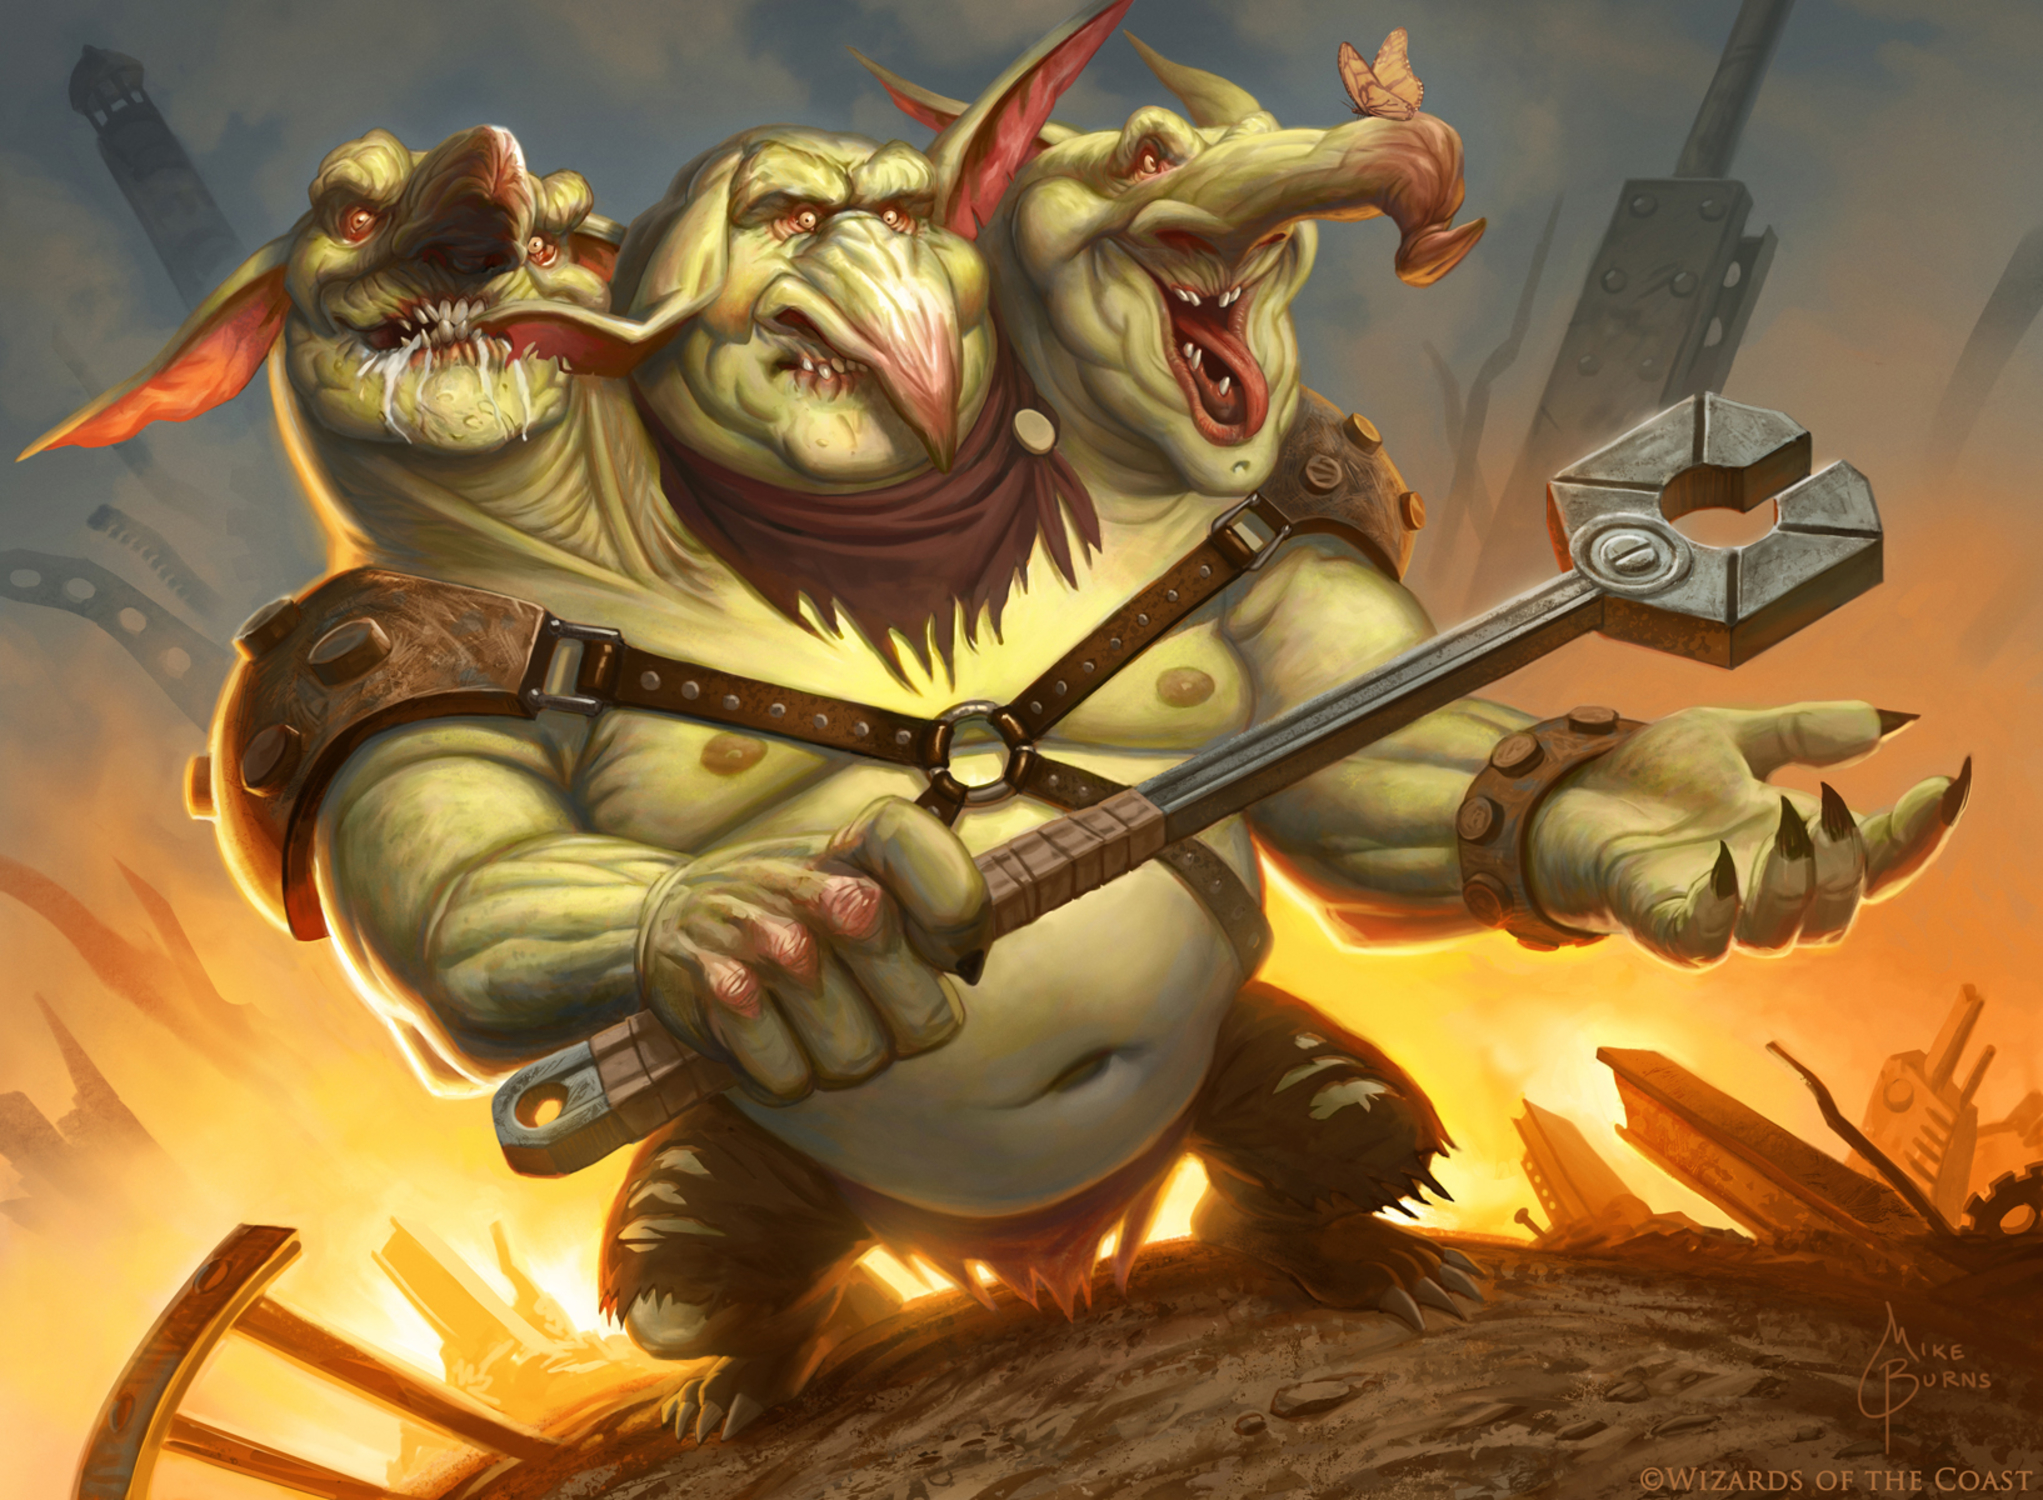 Three-Headed Goblin Artwork by Mike Burns